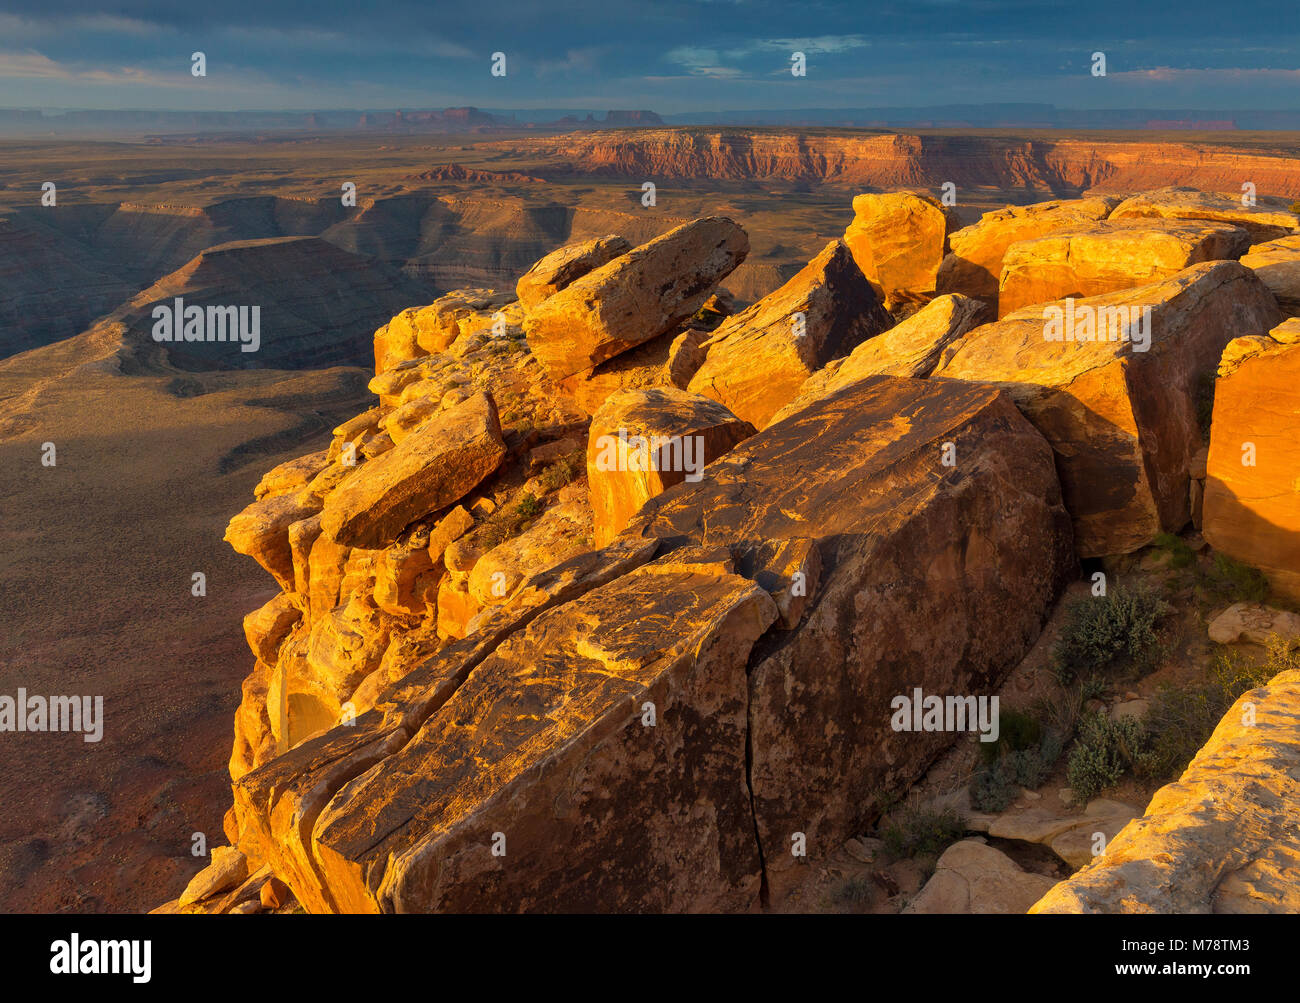 Sunrise, Muley Point, Monument Valley, Glen Canyon National Recreation Area, Utah Immagini Stock